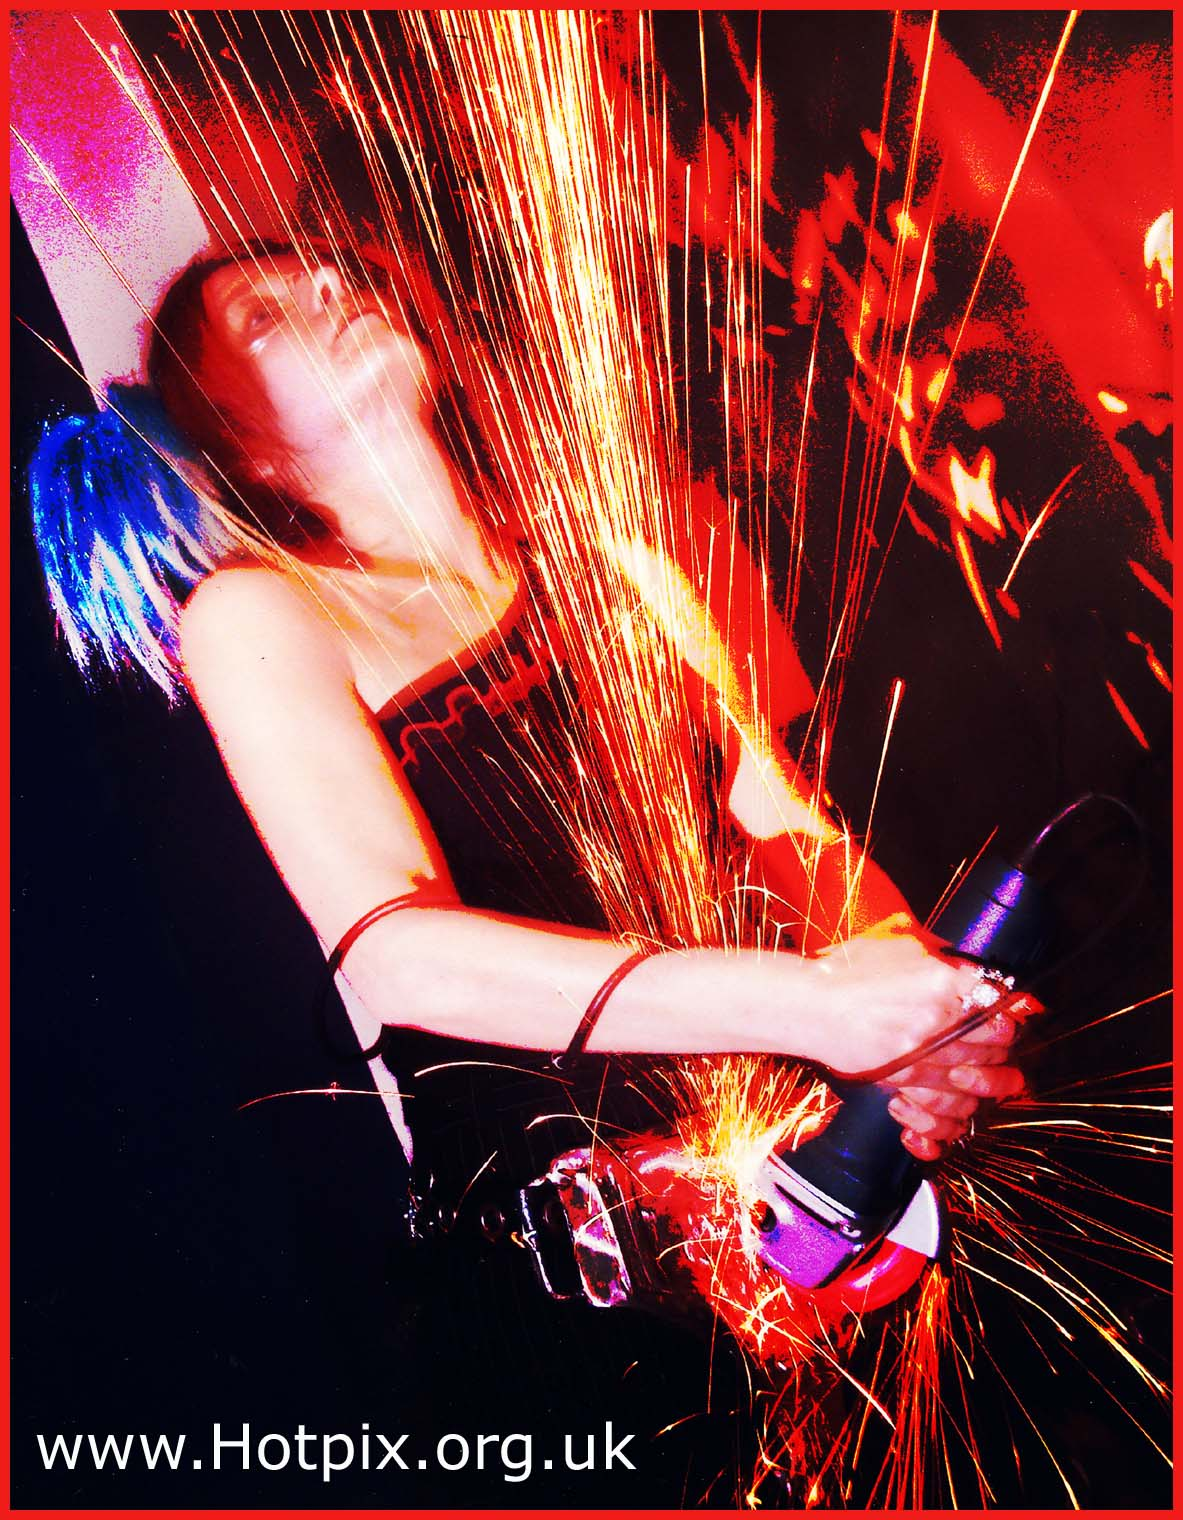 band,girl,woman,grinder,stage,live,music,musician,levenshulm,palace,theatre,theater,red,spark,sparks,UK,england,unsigned,signed,rock,act,manchester,northwest,north,west,Levenshulme,Tony,Hennigan,Hennigans,MIS,@hotpixUK,ActiveH,housingtechnology